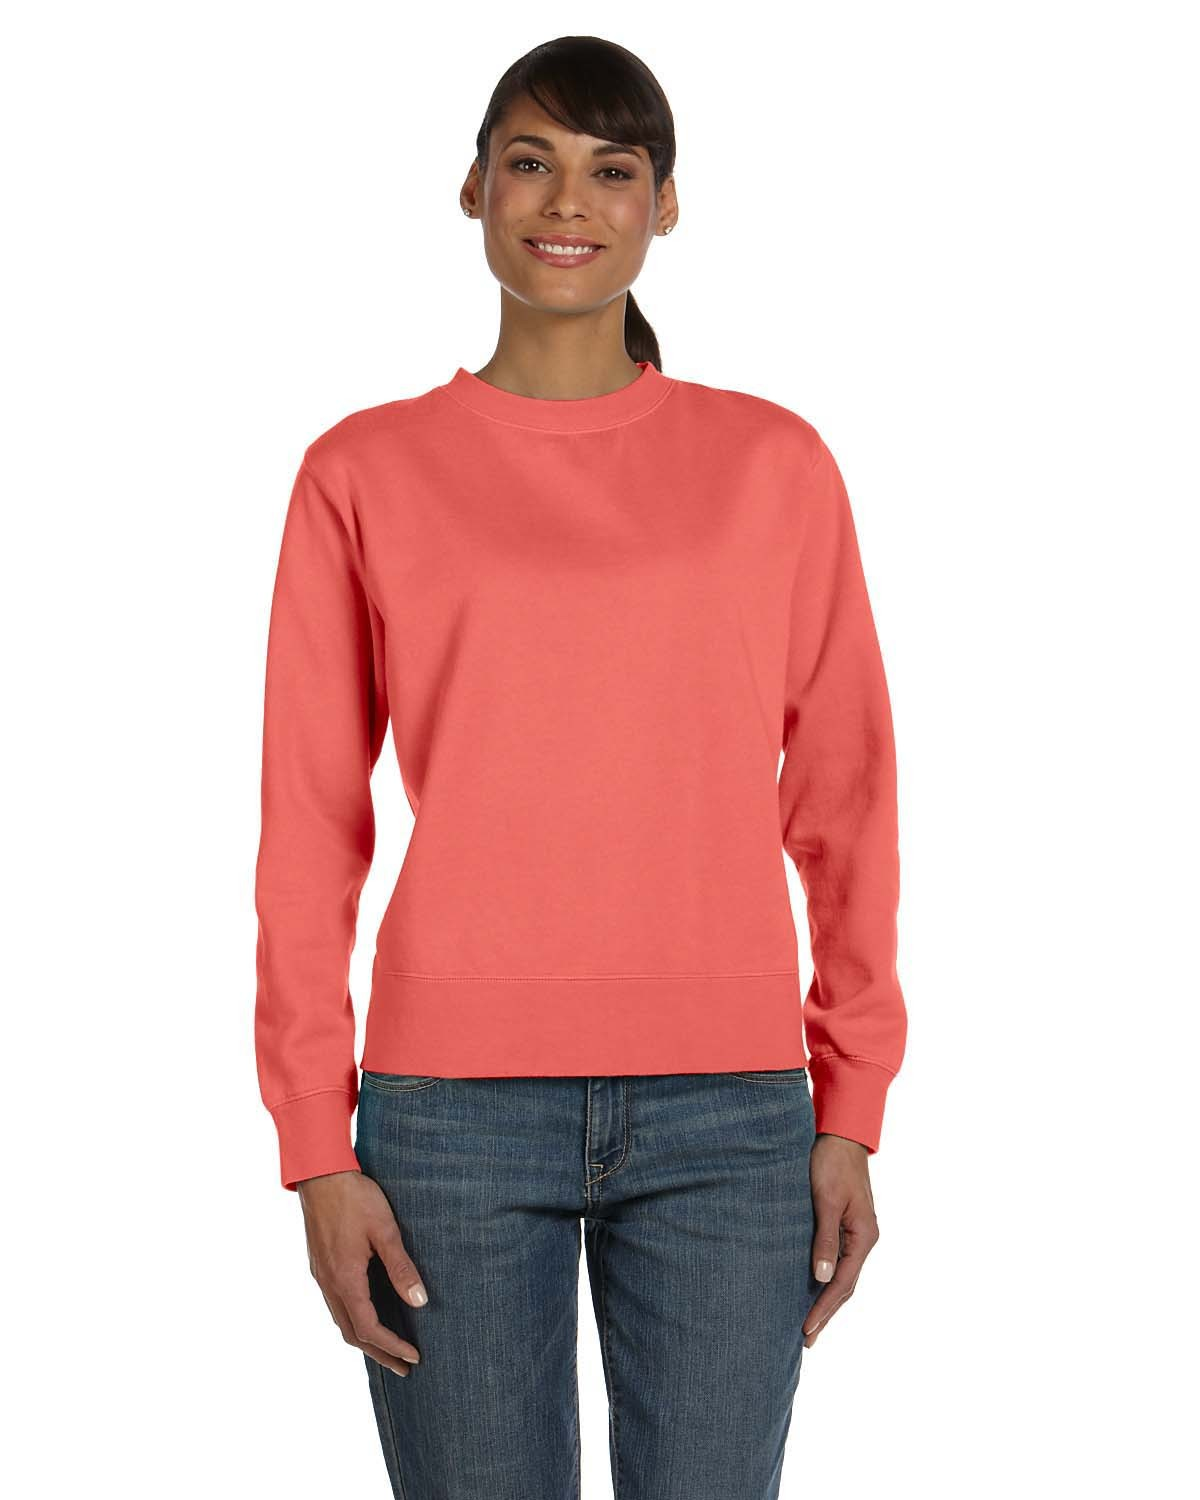 C1596 Comfort Colors BRIGHT SALMON